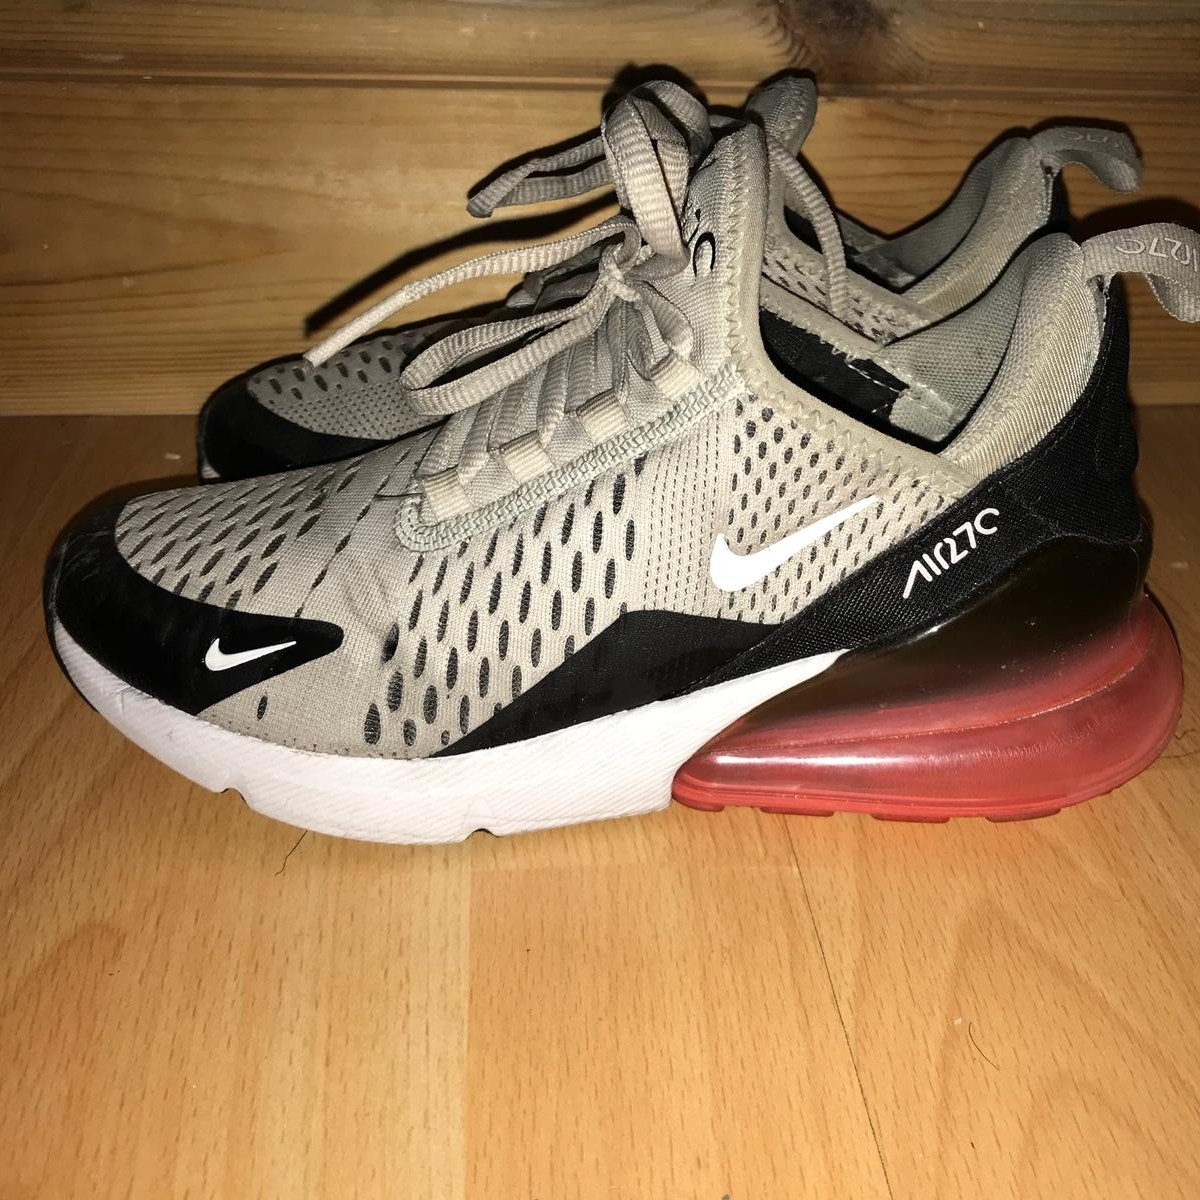 Nike Air Max 270 Beige With Pink Bubble Worn Many Depop